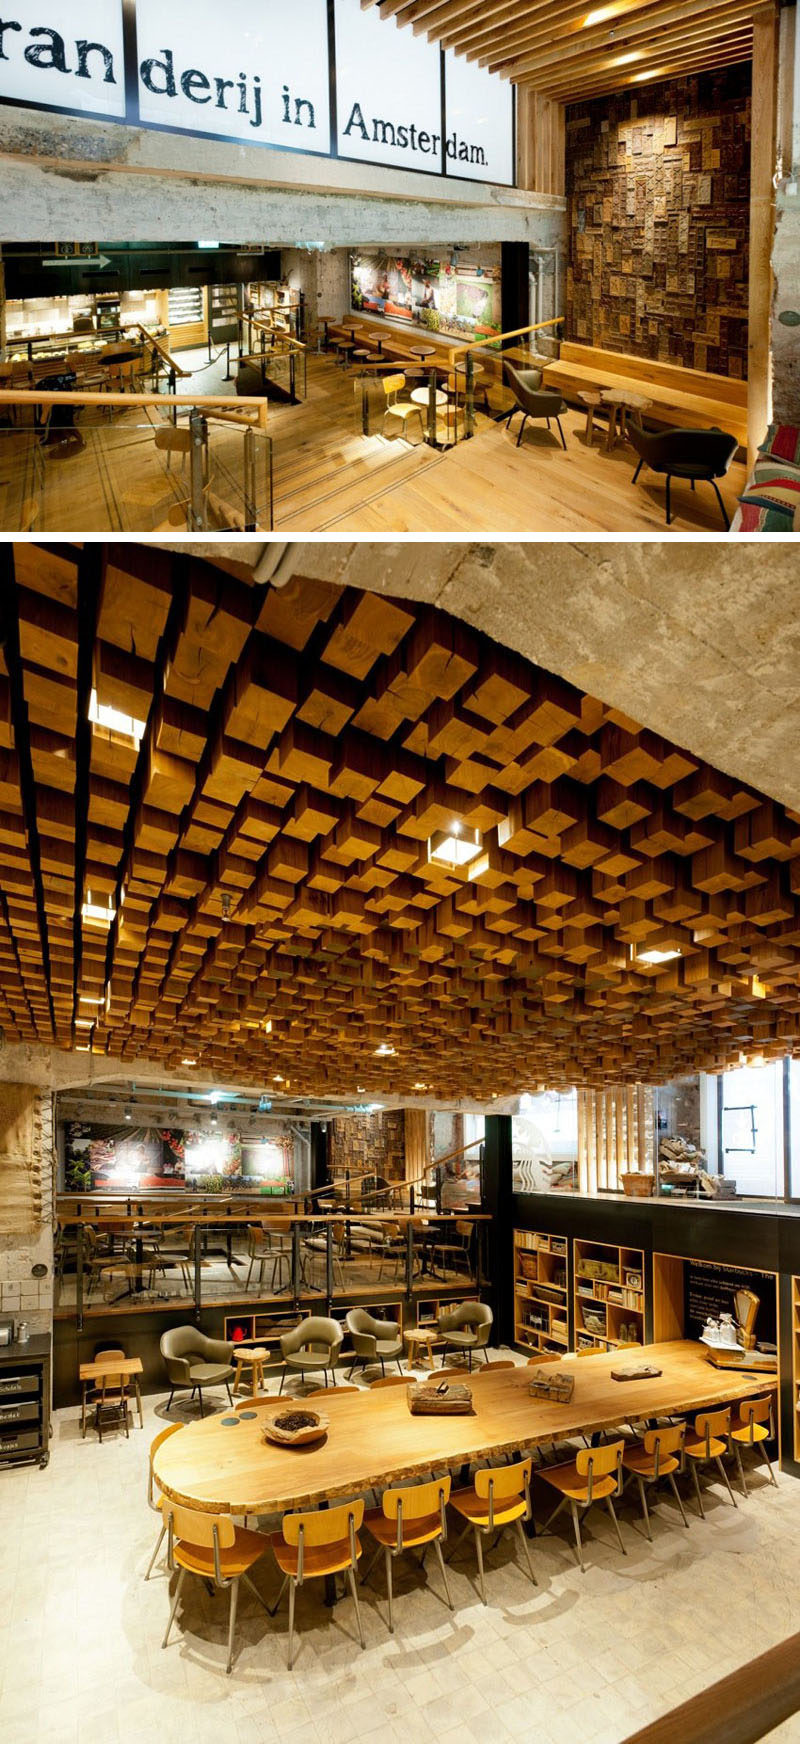 11 Starbucks Coffee Shops From Around The World // By including many Dutch elements in the design of this location and keeping original elements of the structure - like the marble floor - this Starbucks concept store in Amsterdam takes away some of the American feel and makes the store feel a bit more like a local coffee shop.